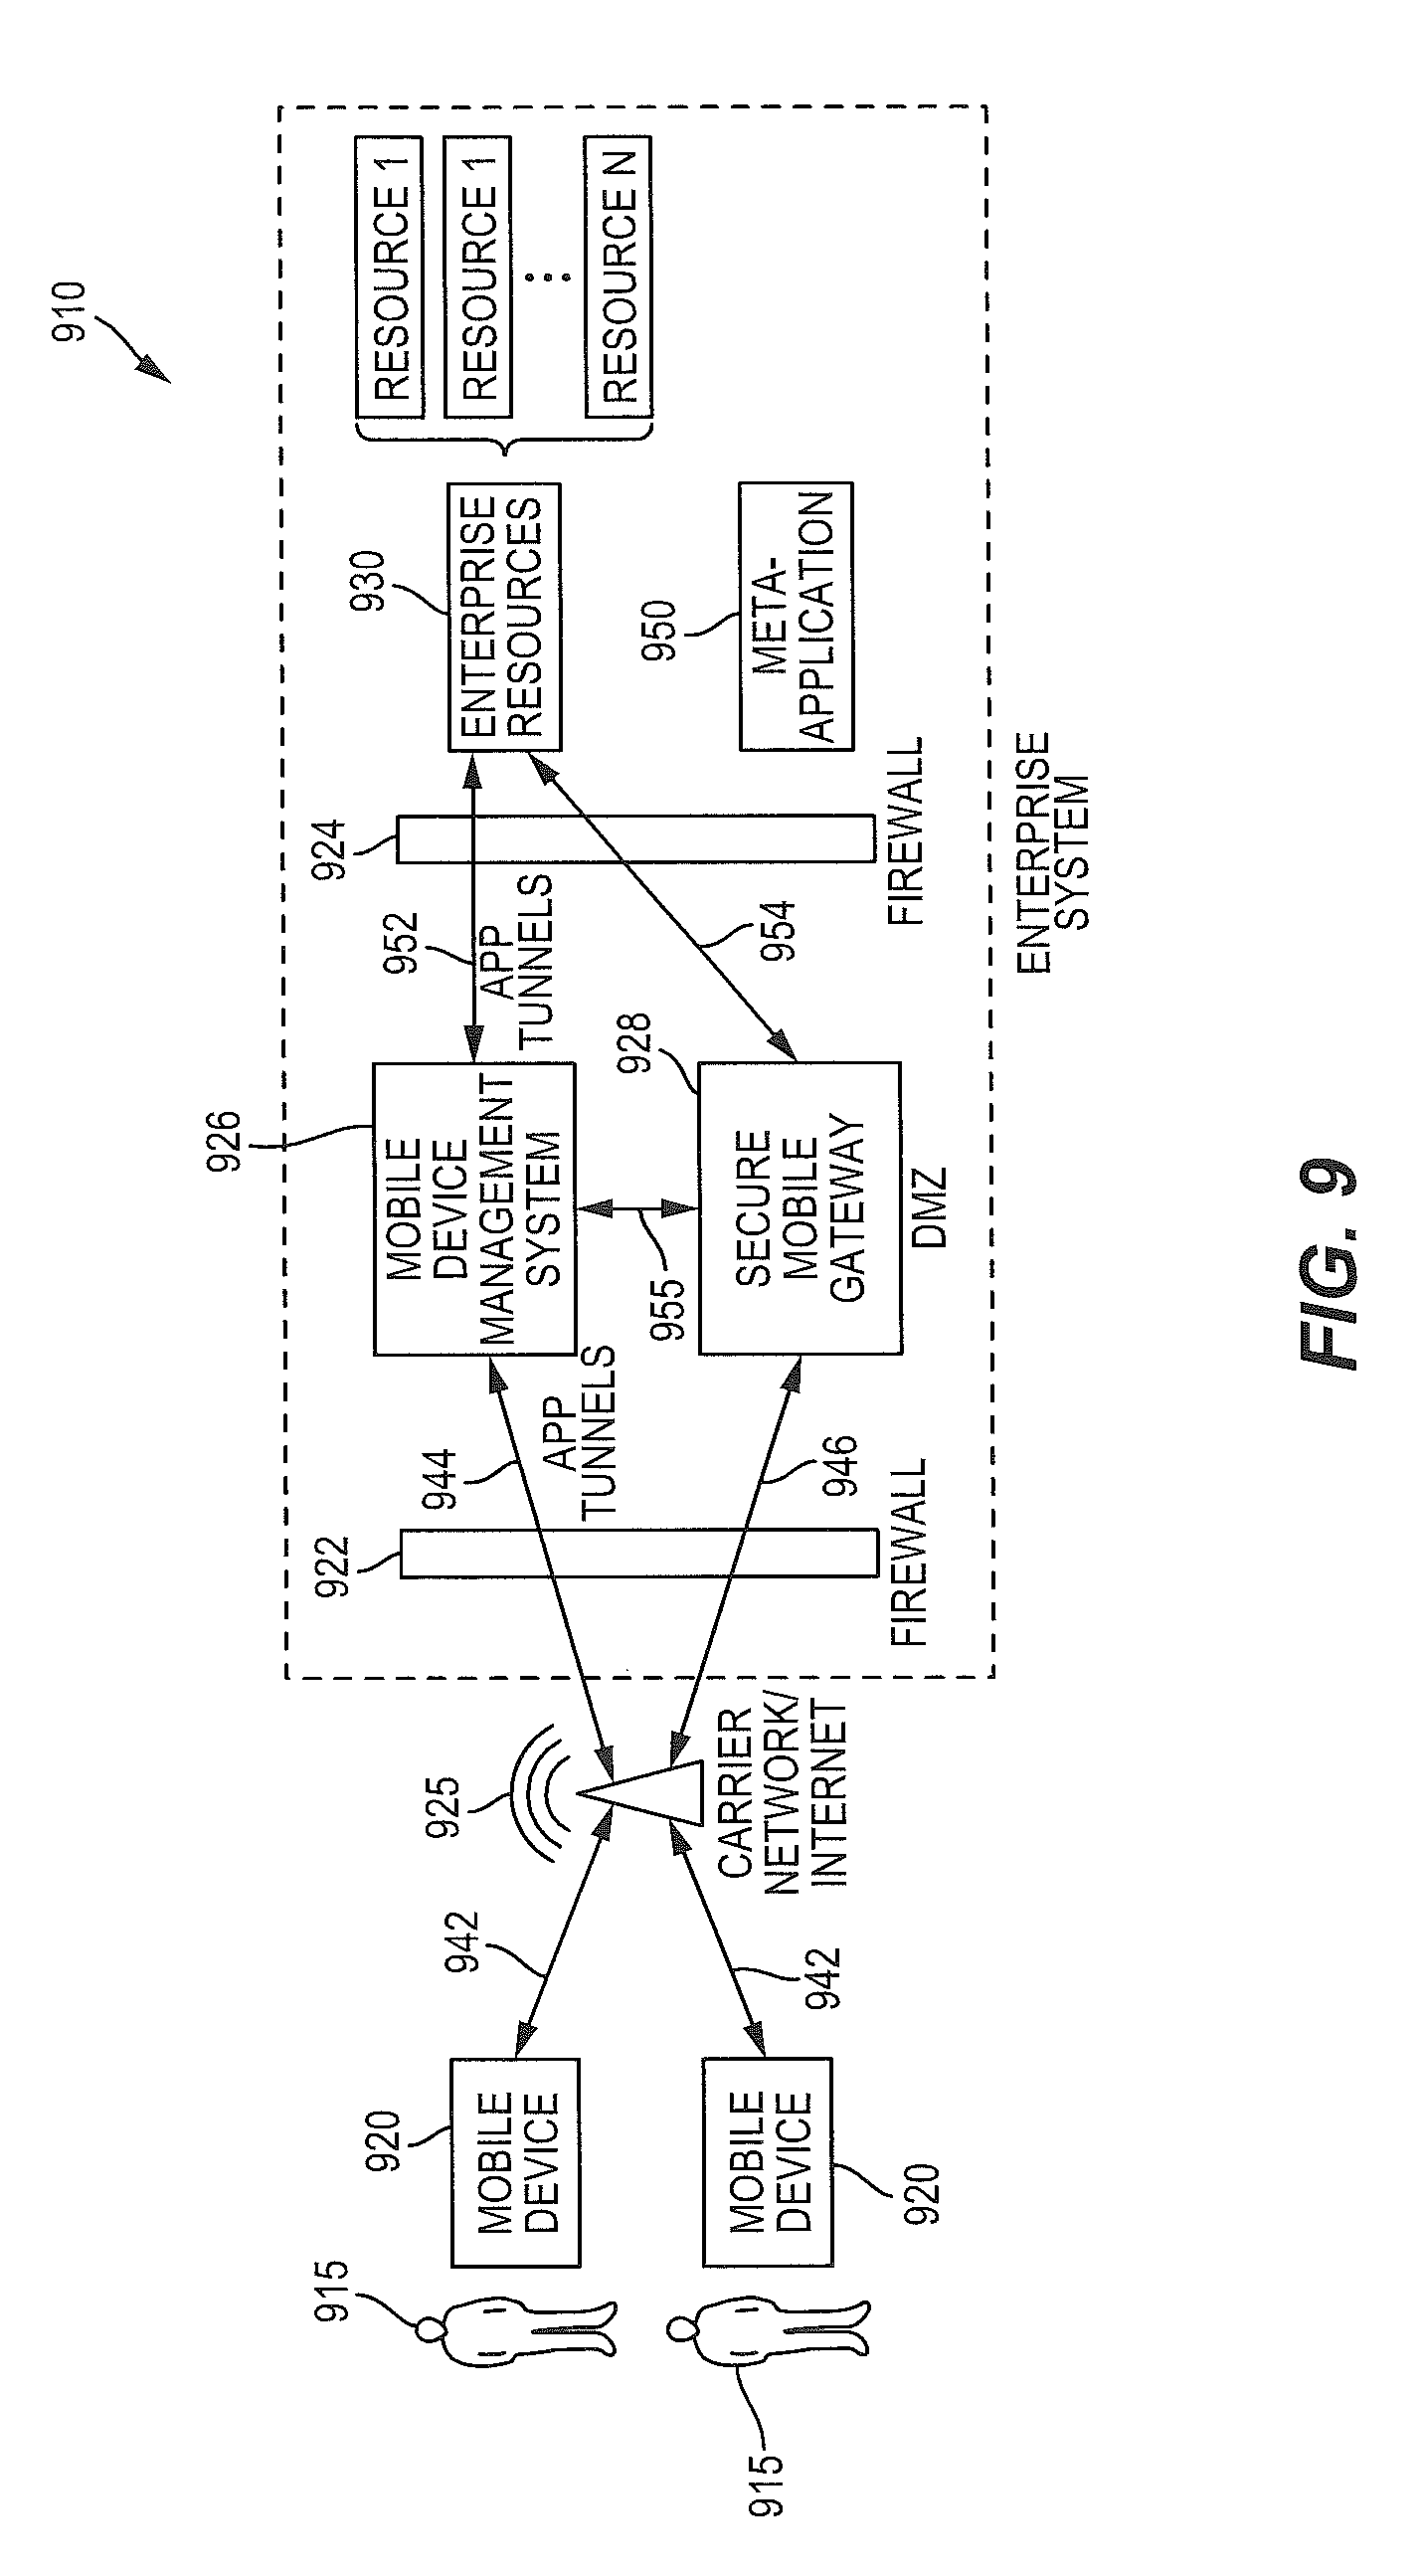 Patent Us 9521147 B2 Wiring Diagram For Case 930